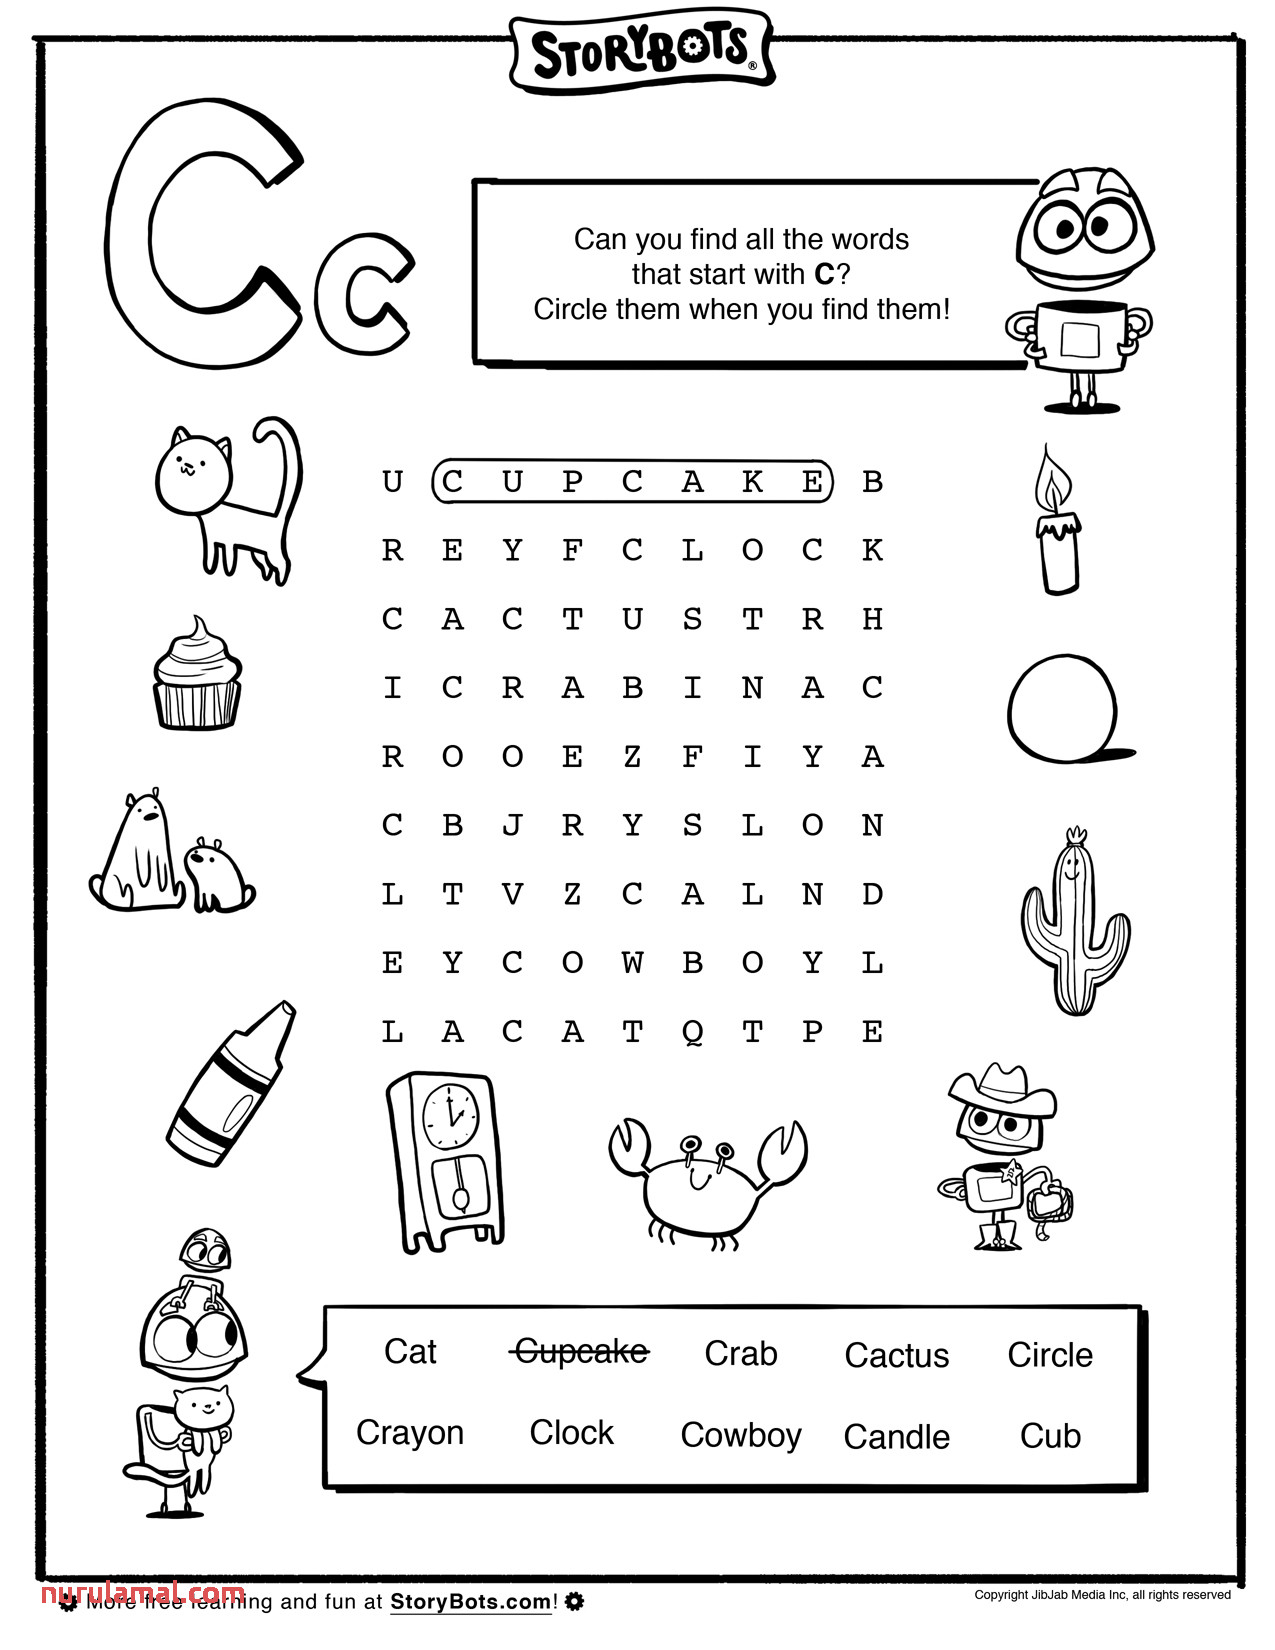 Cowboy Preschool Handwriting Worksheet